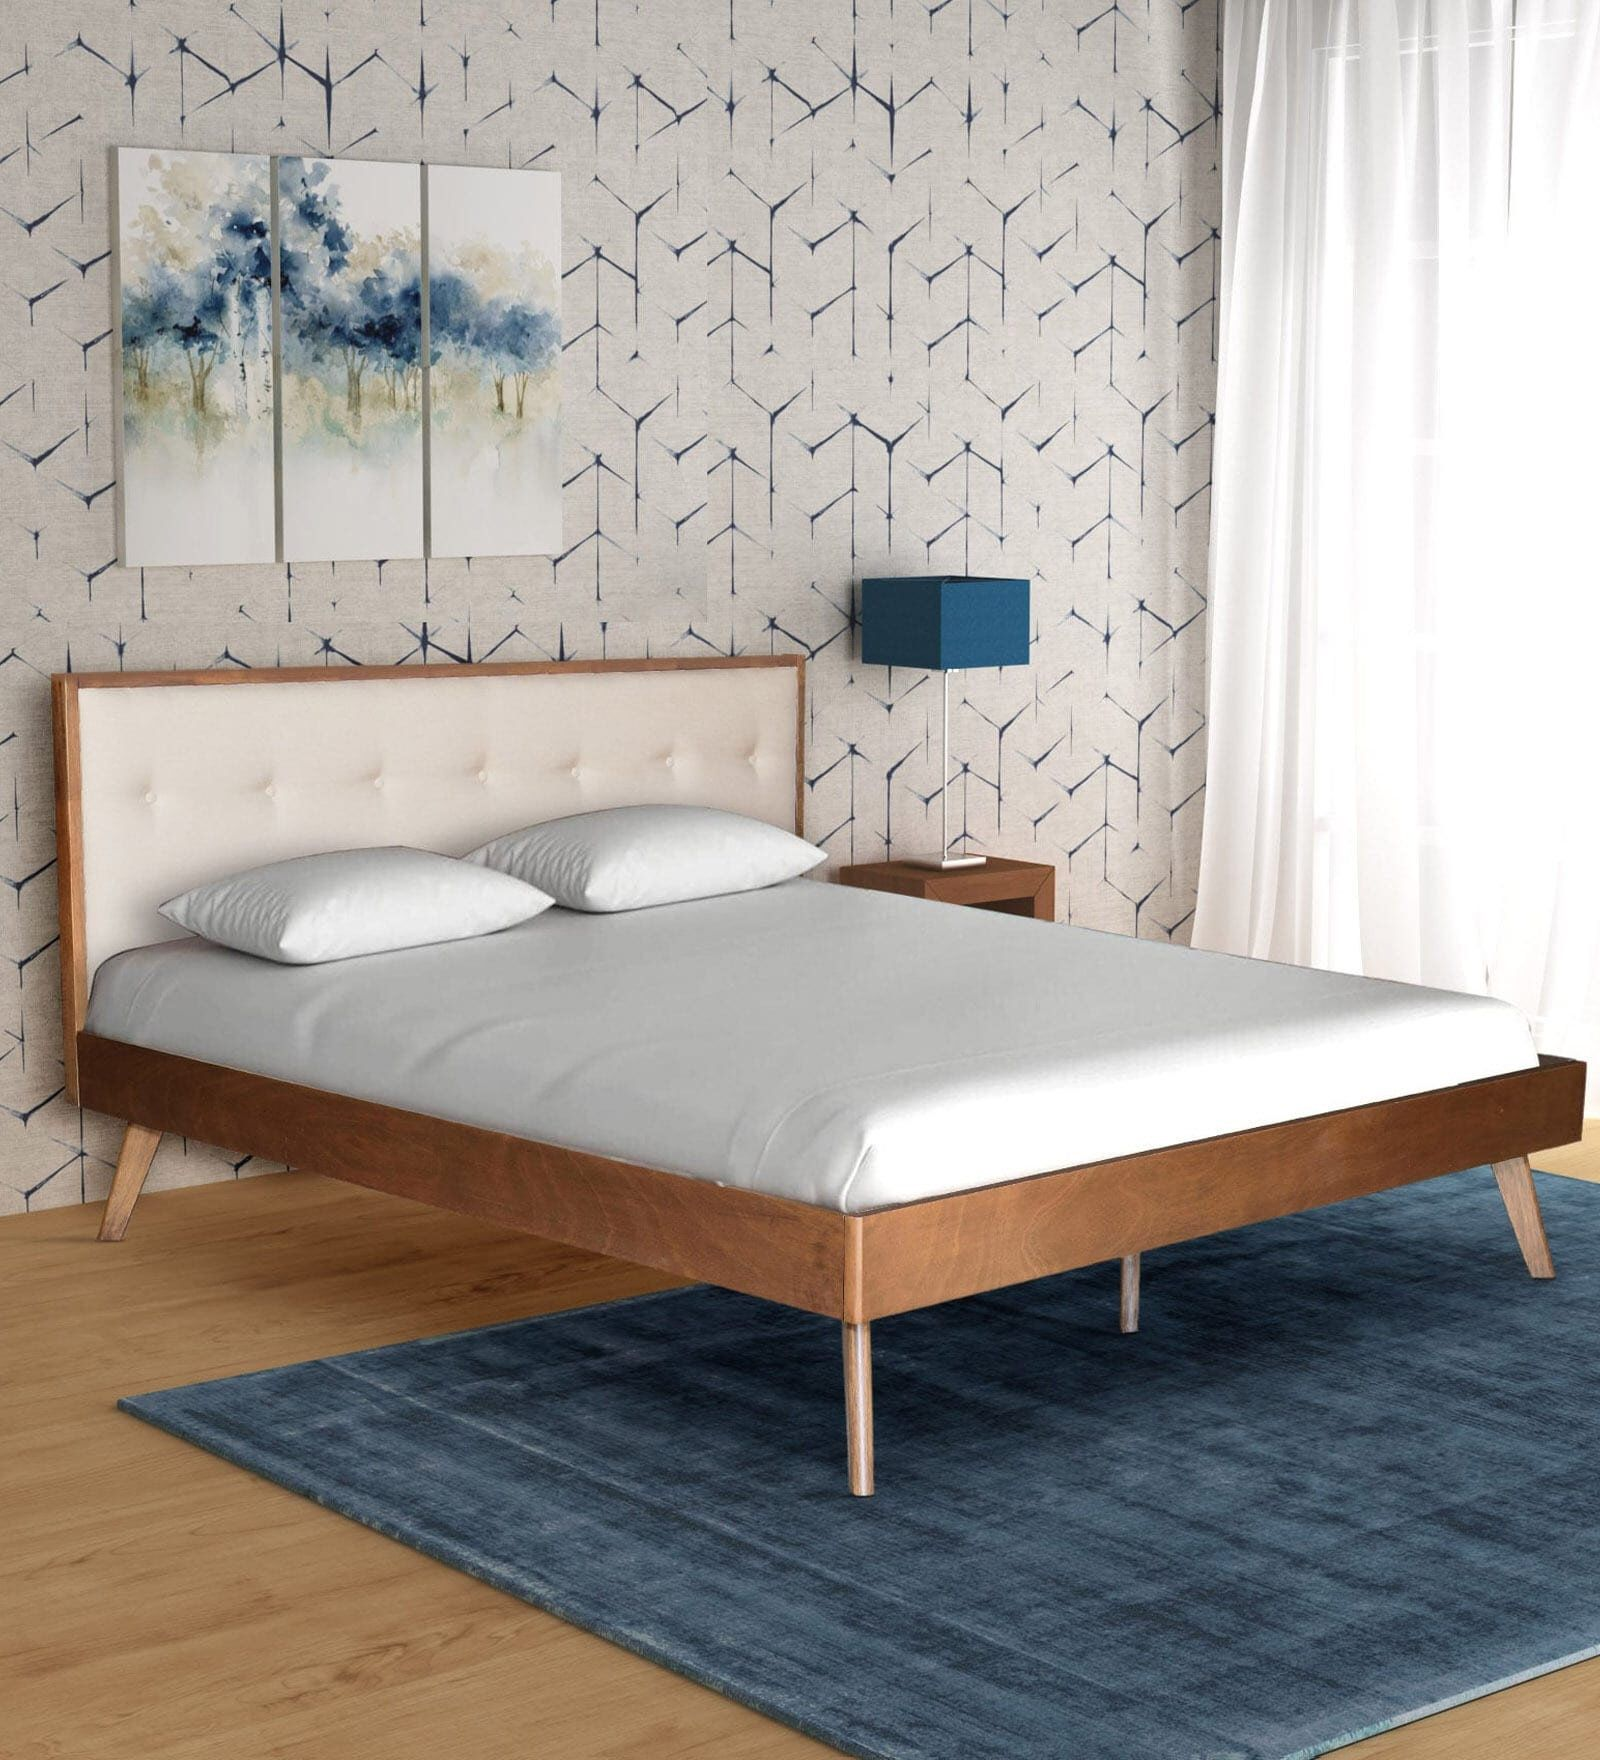 King Size Bed Bed Wooden Platform Bed Classy Finish Head Board